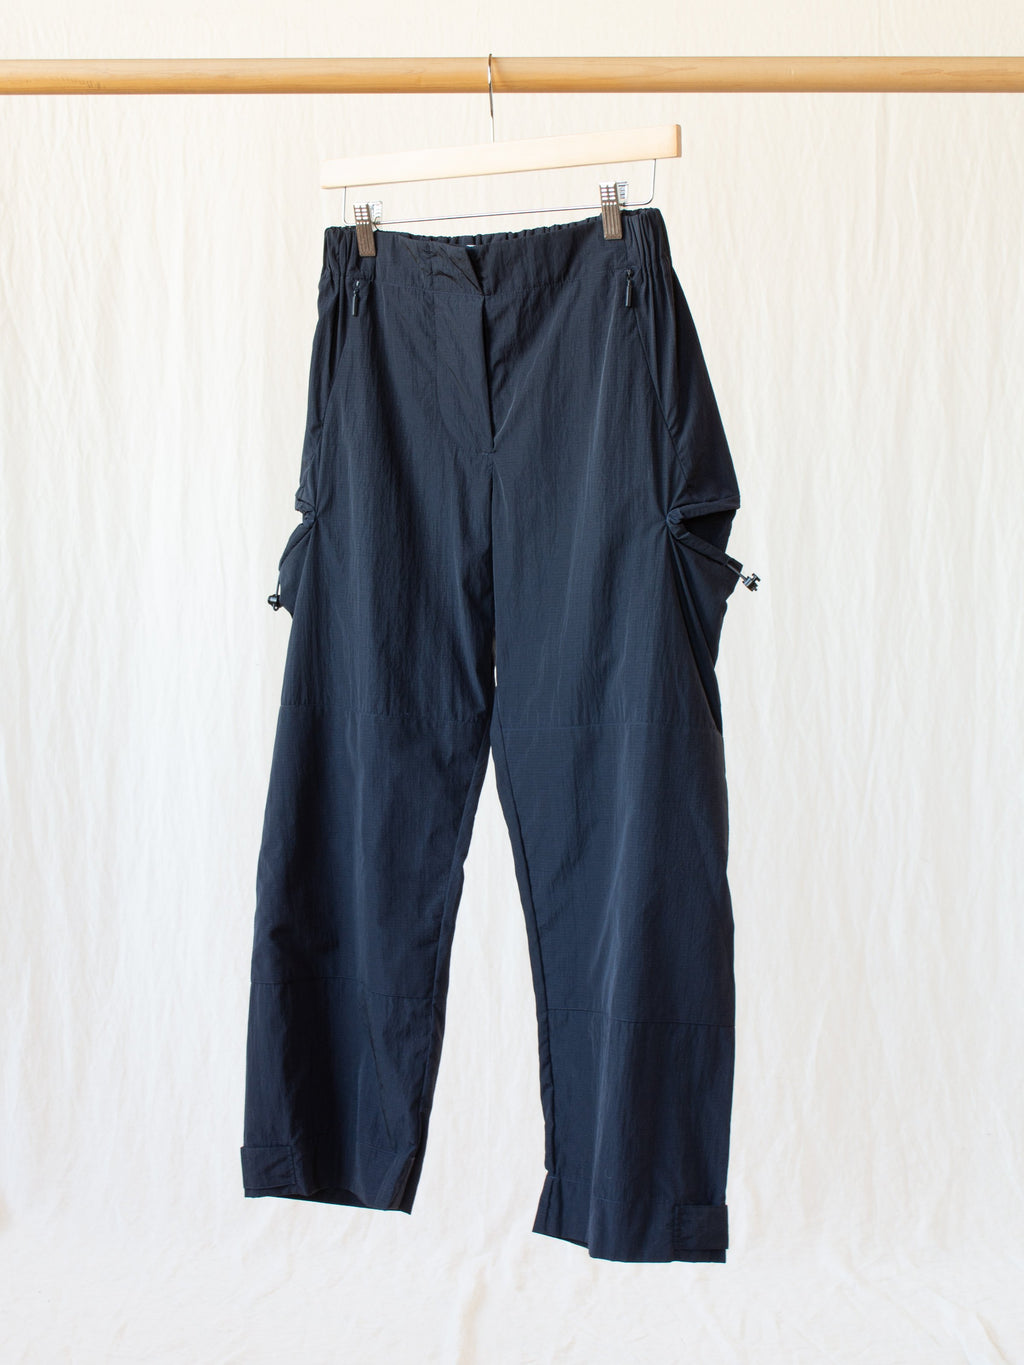 Namu Shop - Studio Nicholson Romero Technical Pants